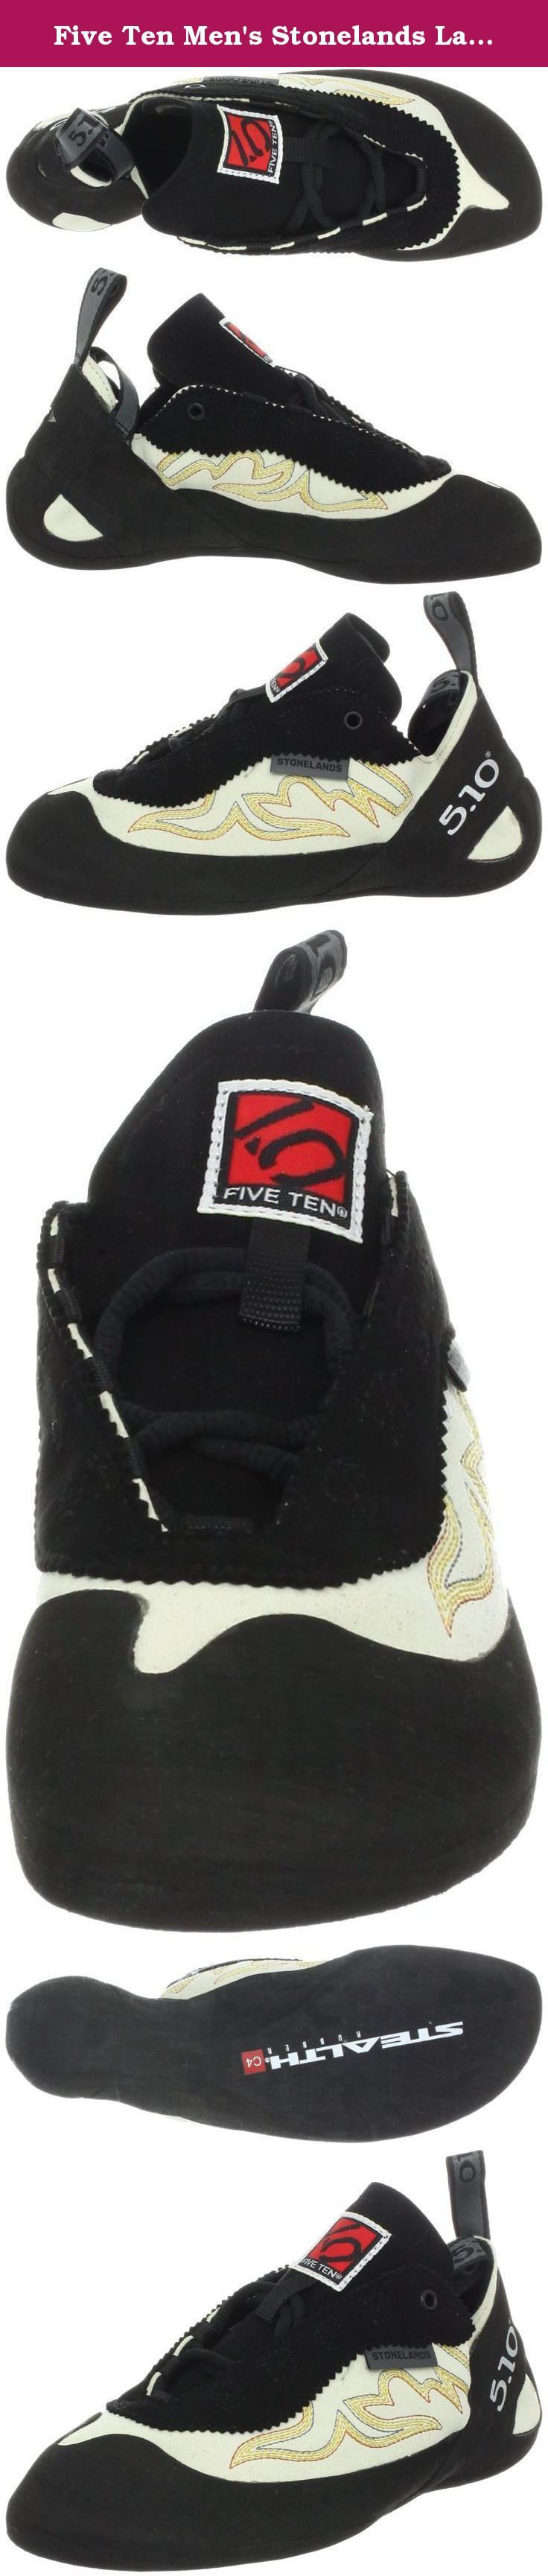 Five Ten Men's Stonelands Lace Climbing Shoe,White Sands/Black,5.5 M US. Five Ten, the Brand of the Brave, is a leader in performance, high-friction footwear. From downhill mountain bike racing to rock climbing, from wing suit flying to kayaking, Five Ten makes footwear for the world's most dangerous sports. The Redlands, California-based company has been producing cutting-edge designs and proprietary Stealth rubber soles for nearly 30 years. With the help of top national and…